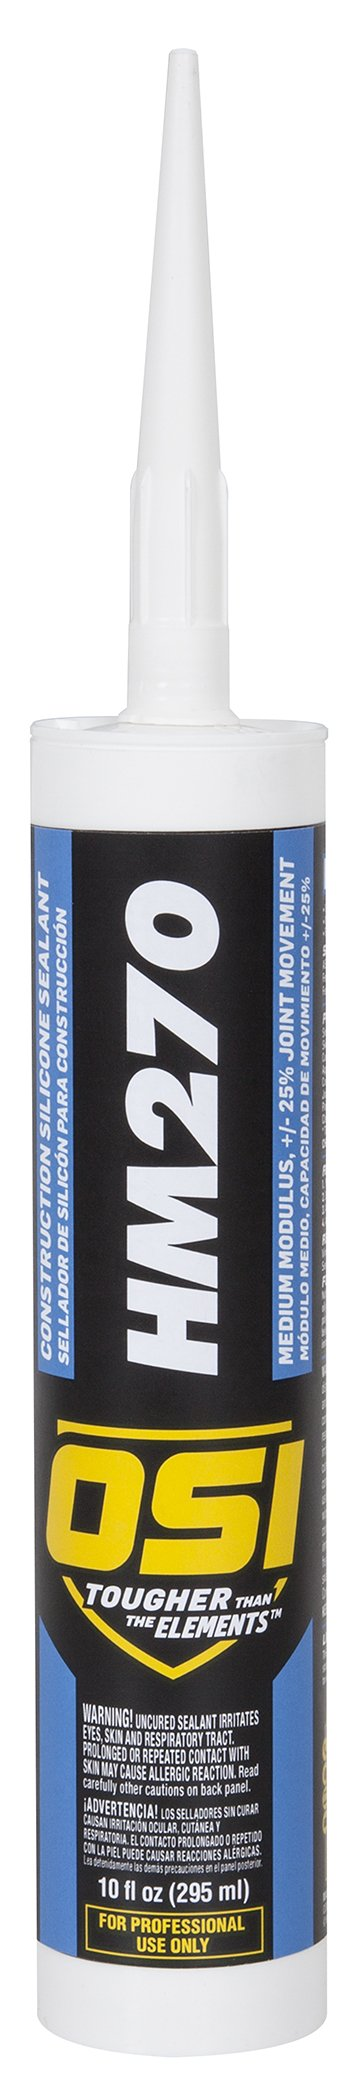 OSI HM270 White Silicone Construction Sealant 10-Fluid Ounce Cartridge (1493960)